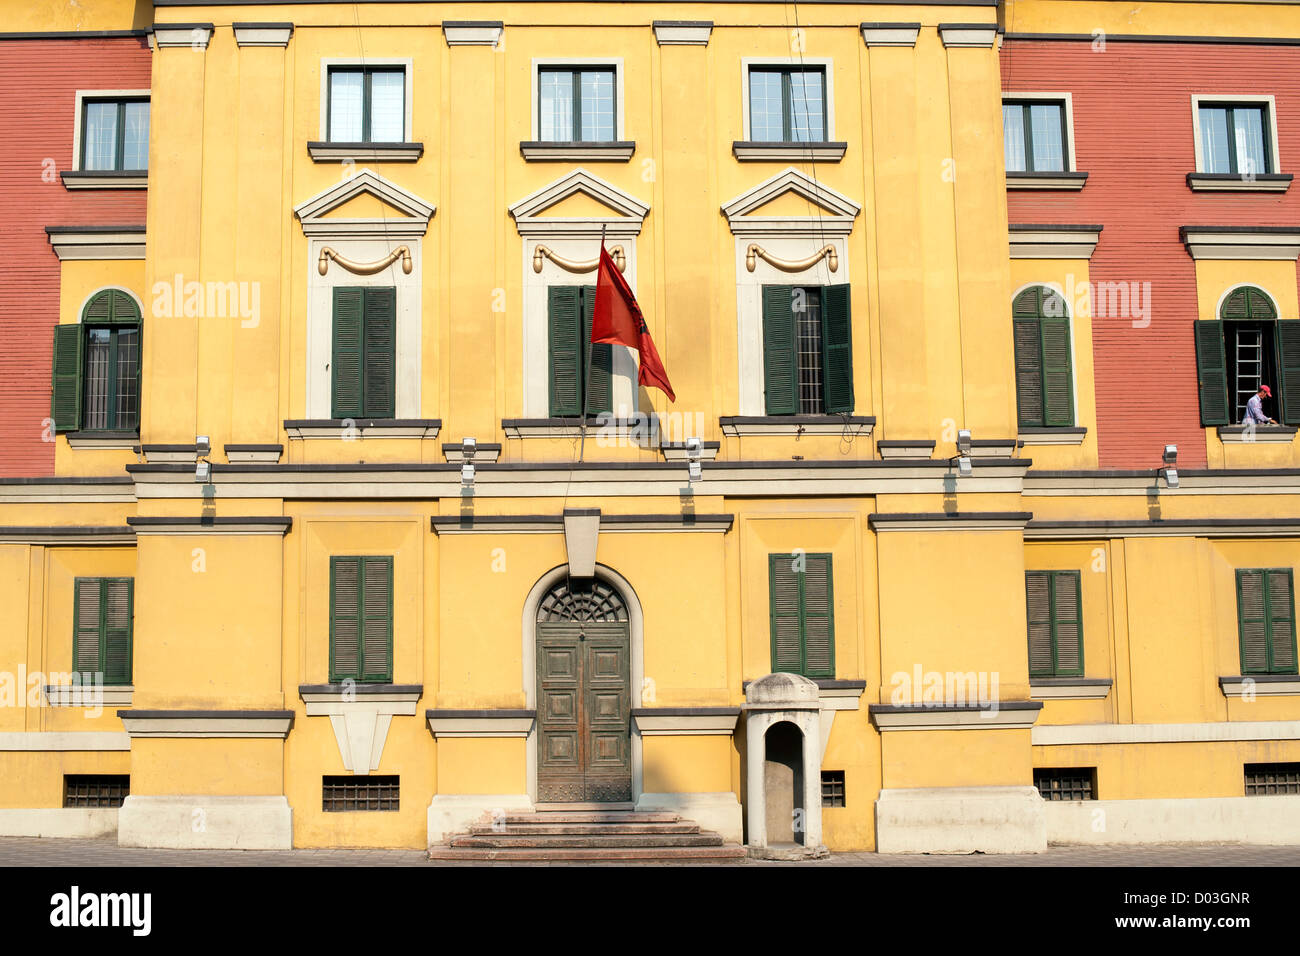 Administrative building in Tirana, the capital of Albania. - Stock Image